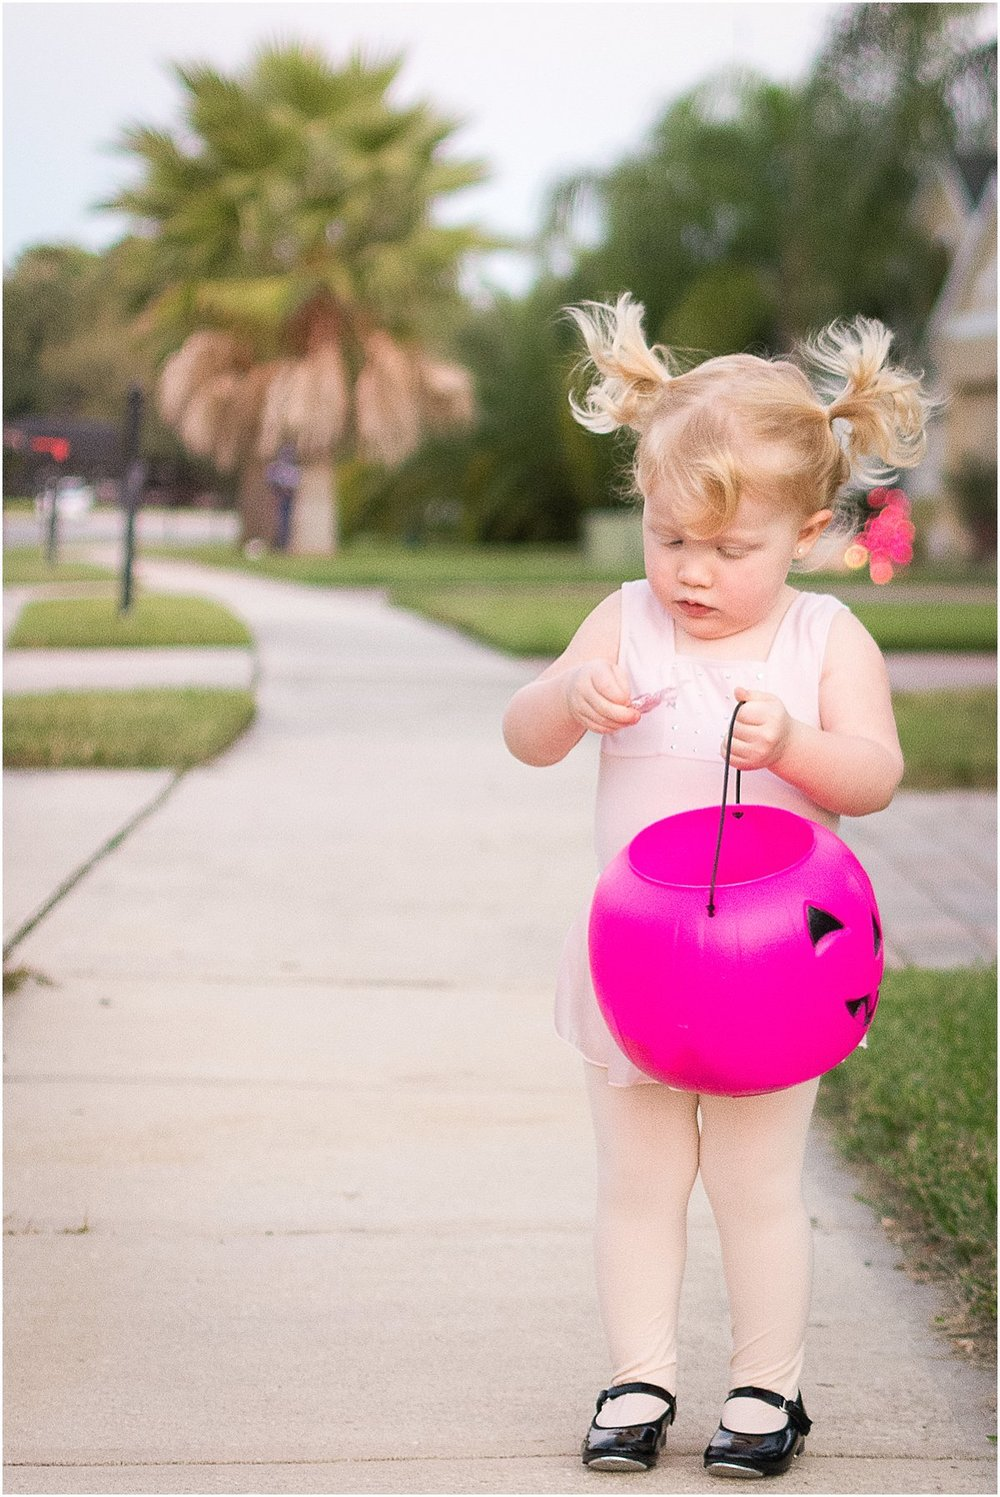 Ashley_Rogers_Photography_Orlando_Non-Posed_Newborn_Family_Lifestyle_Photographer_0153.jpg